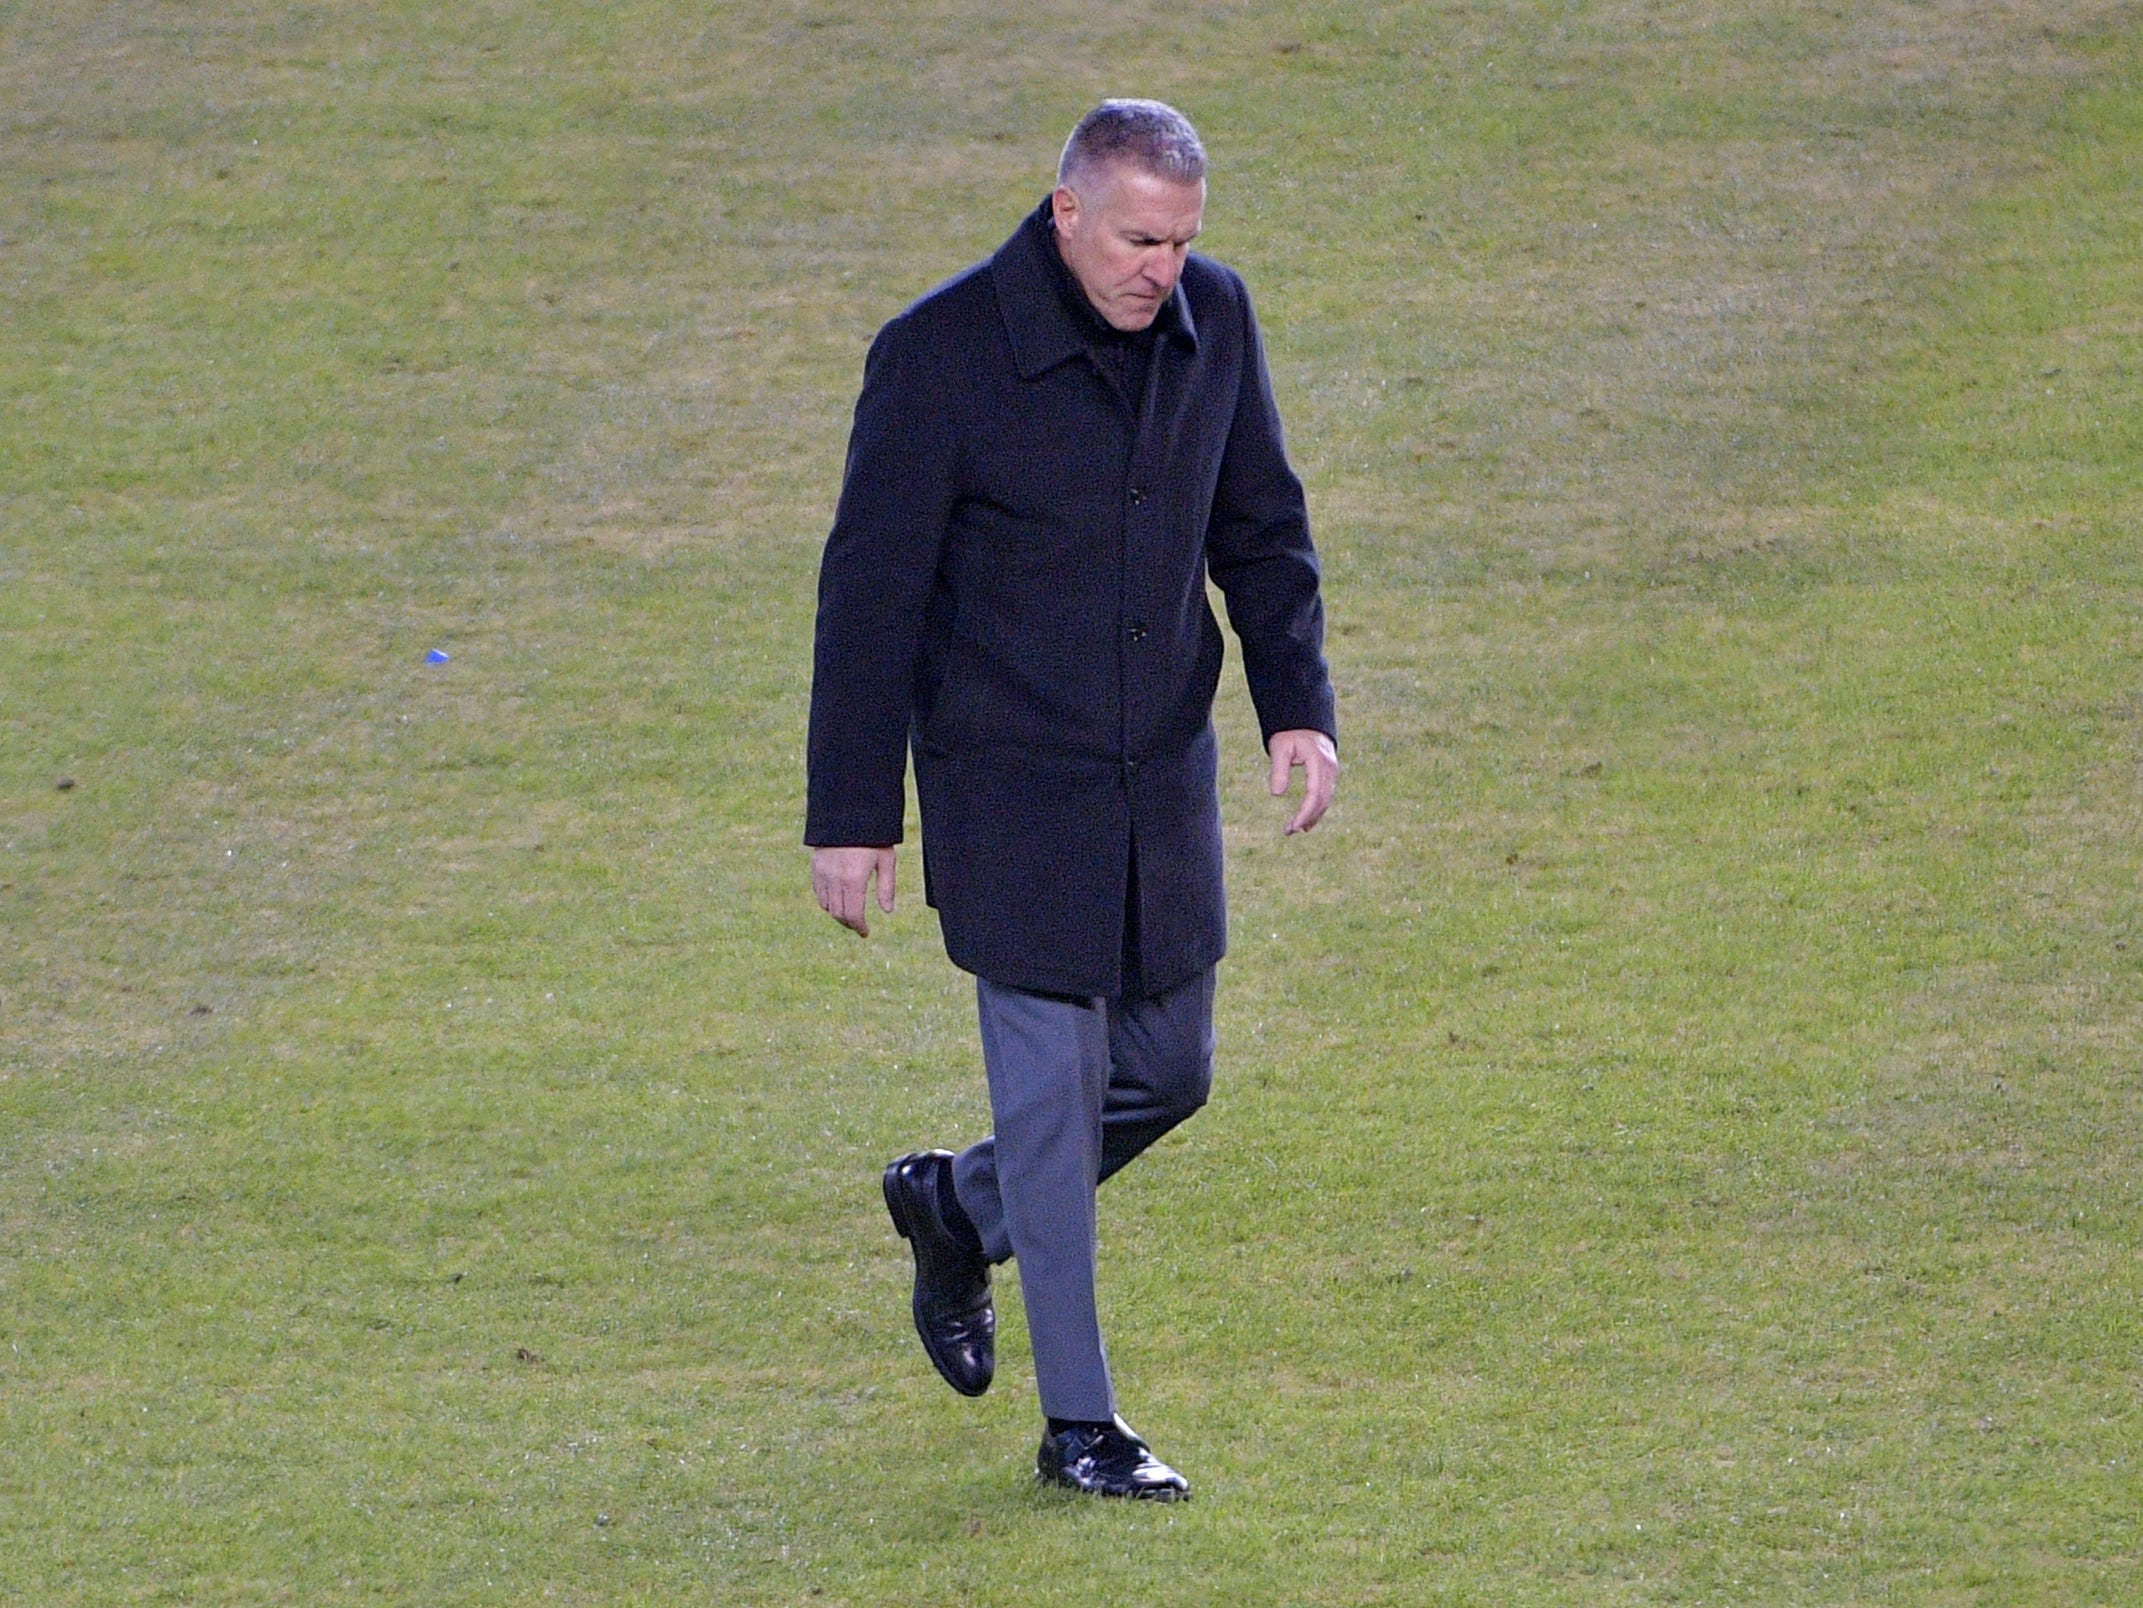 Nov 29, 2018; Kansas City, KS, USA; Sporting Kansas City head coach Peter Vermes walks out on the field to admonish fans to not throw objects on the field in a game against the Portland Timbers in the second leg of the MLS Western Conference Championship at Children's Mercy Park. Mandatory Credit: Denny Medley-USA TODAY Sports